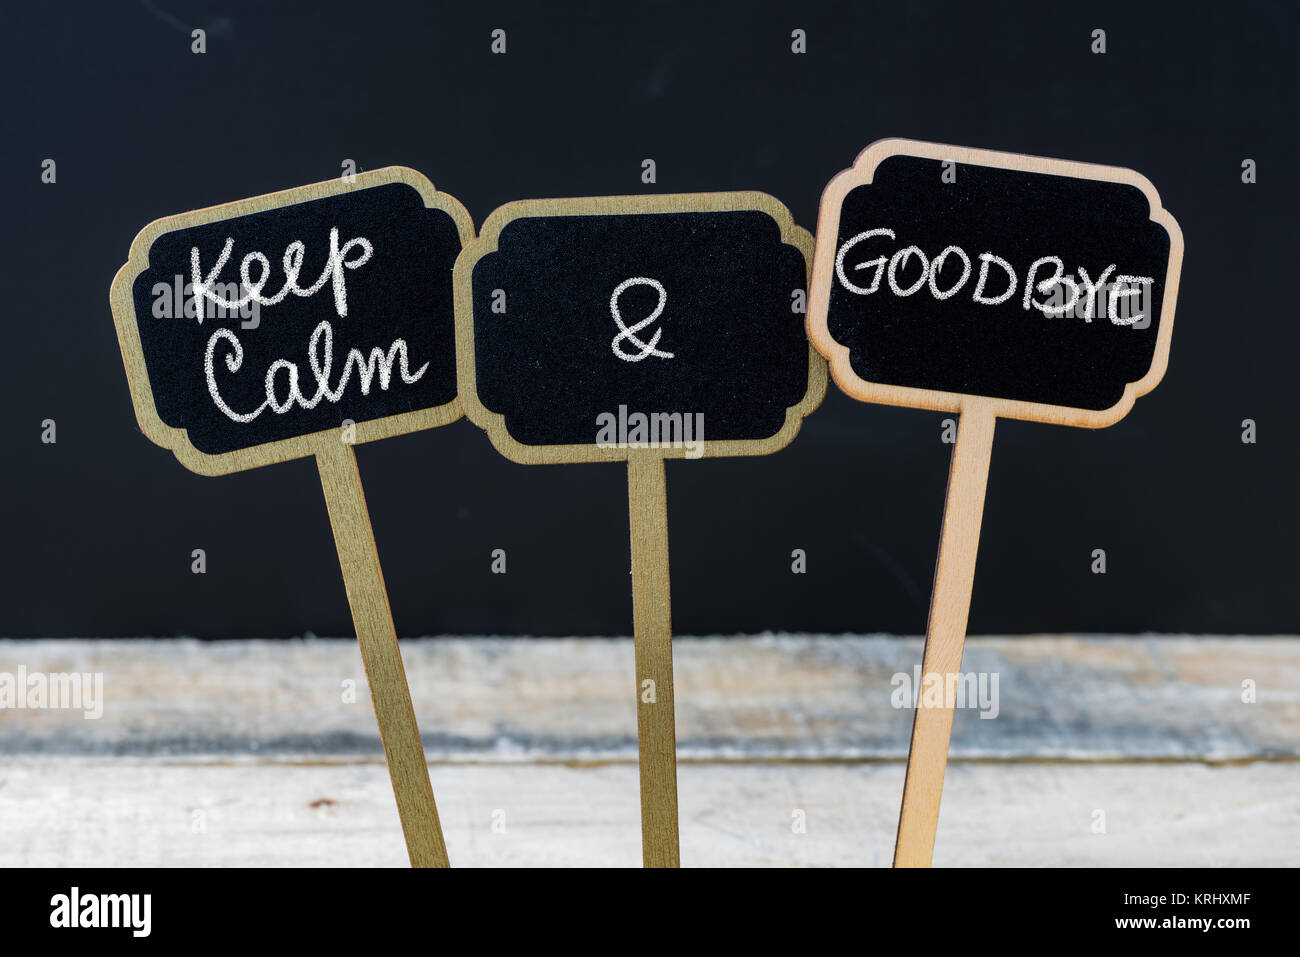 Keep Calm and Goodbye message written with chalk on mini blackboard labels - Stock Image